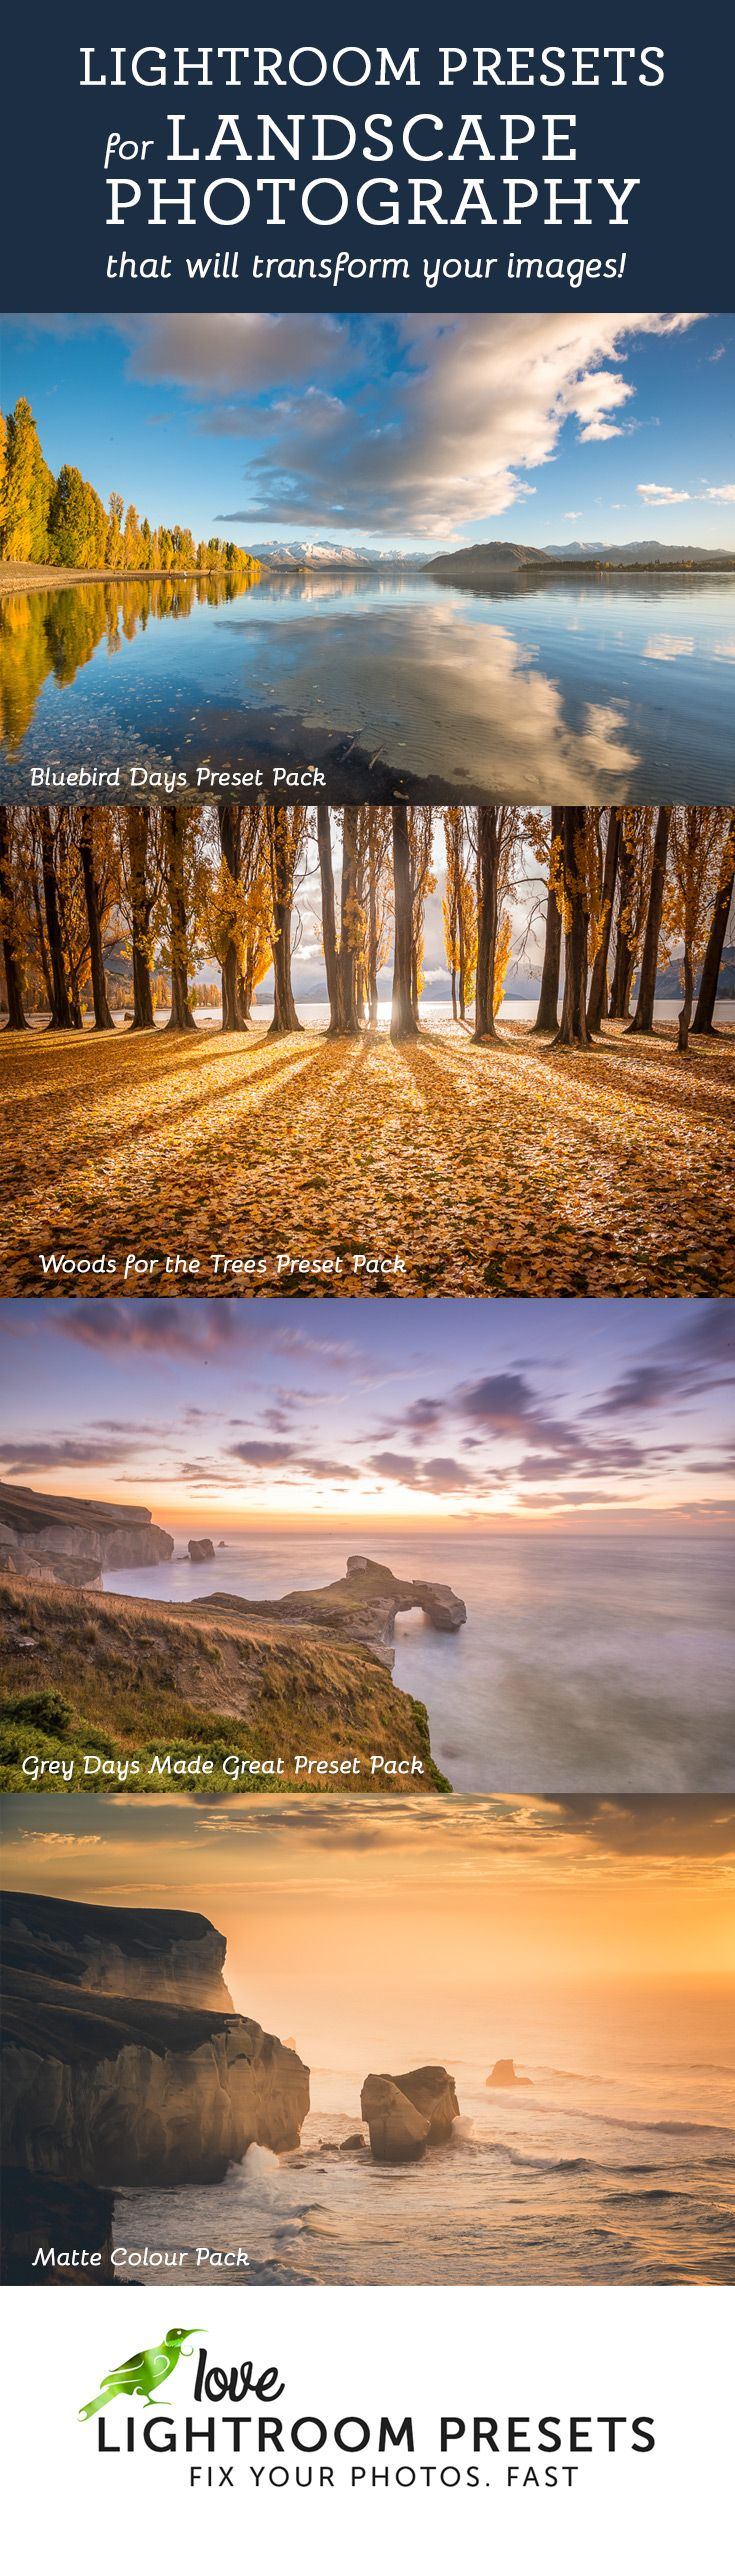 Rescue a sunset, make those grey day photos look great, enhance a blue sky - Adobe Lightroom Presets designed by a professional landscape photographer specifically for landscape editing.